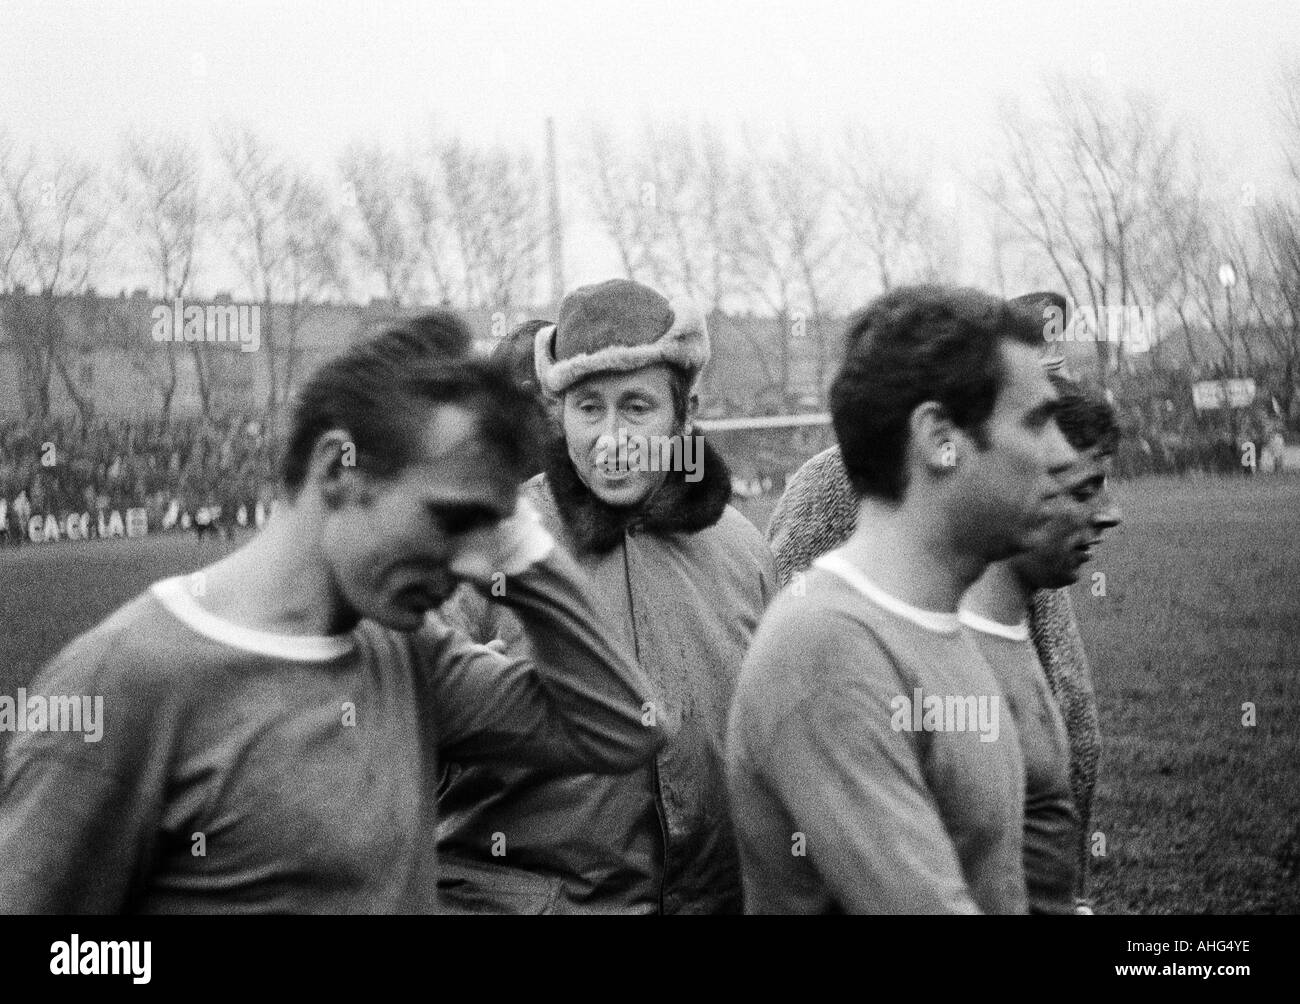 football, Bundesliga, 1968/1969, Glueckaufkampfbahn Stadium in Gelsenkirchen, FC Schalke 04 versus Kickers Offenbach 3:0, football players leaving the pitch, f.l.t.r. Reinhard Libuda, coach Rudolf Gutendorf, Franz Hasil, Klaus Senger (all Schalke) - Stock Image